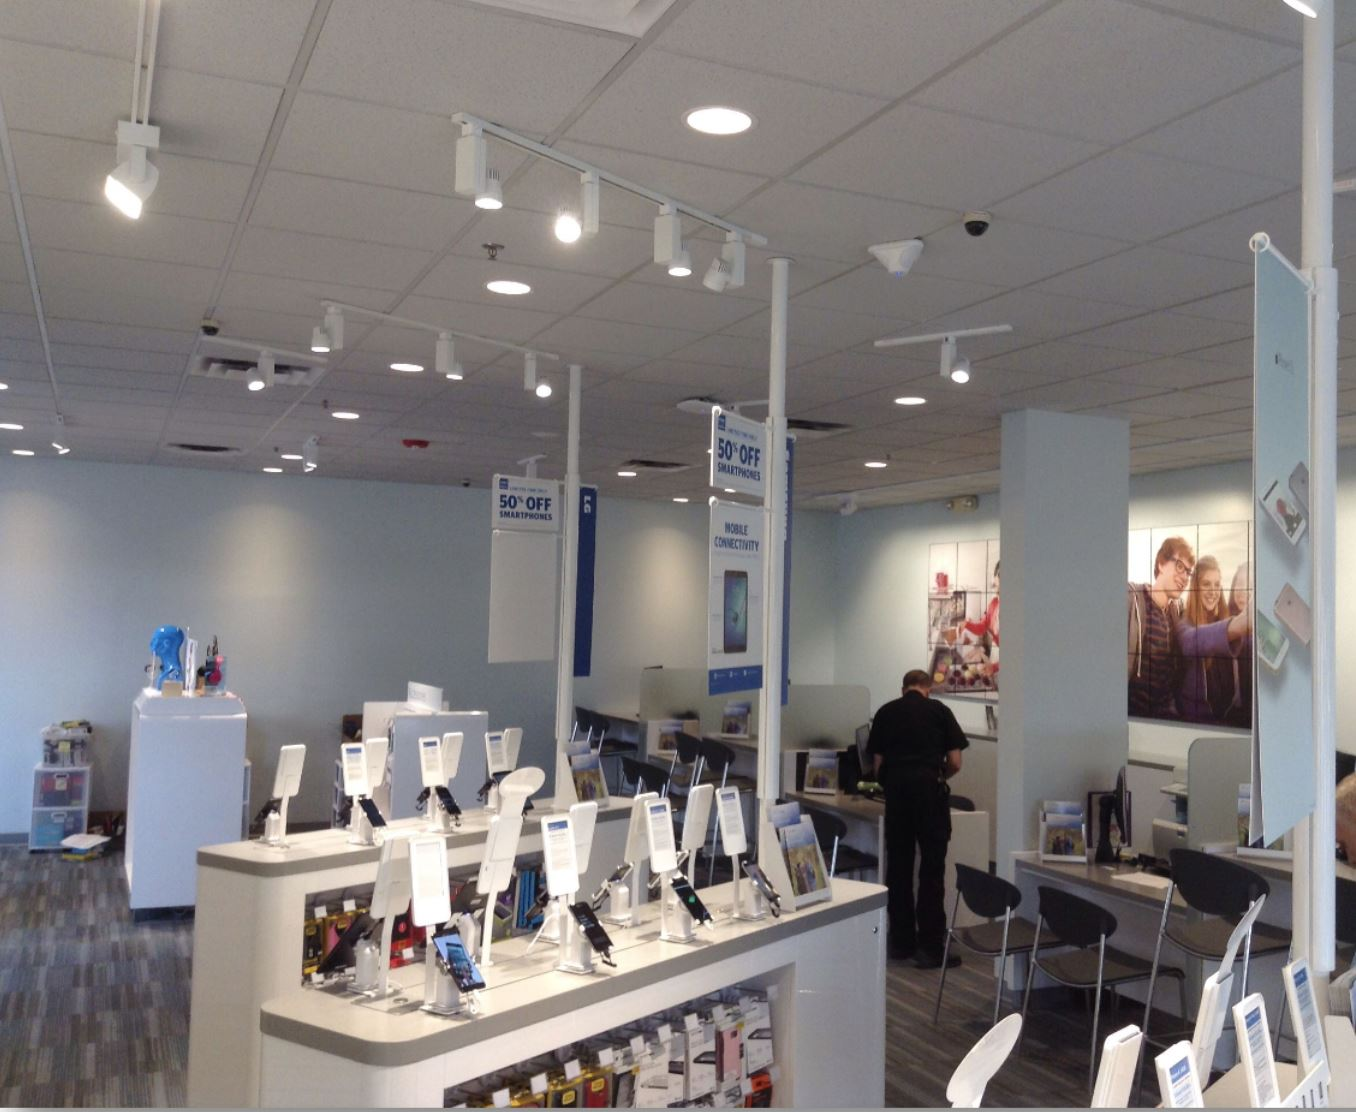 LI Group Construction of US Cellular In-Store Displays